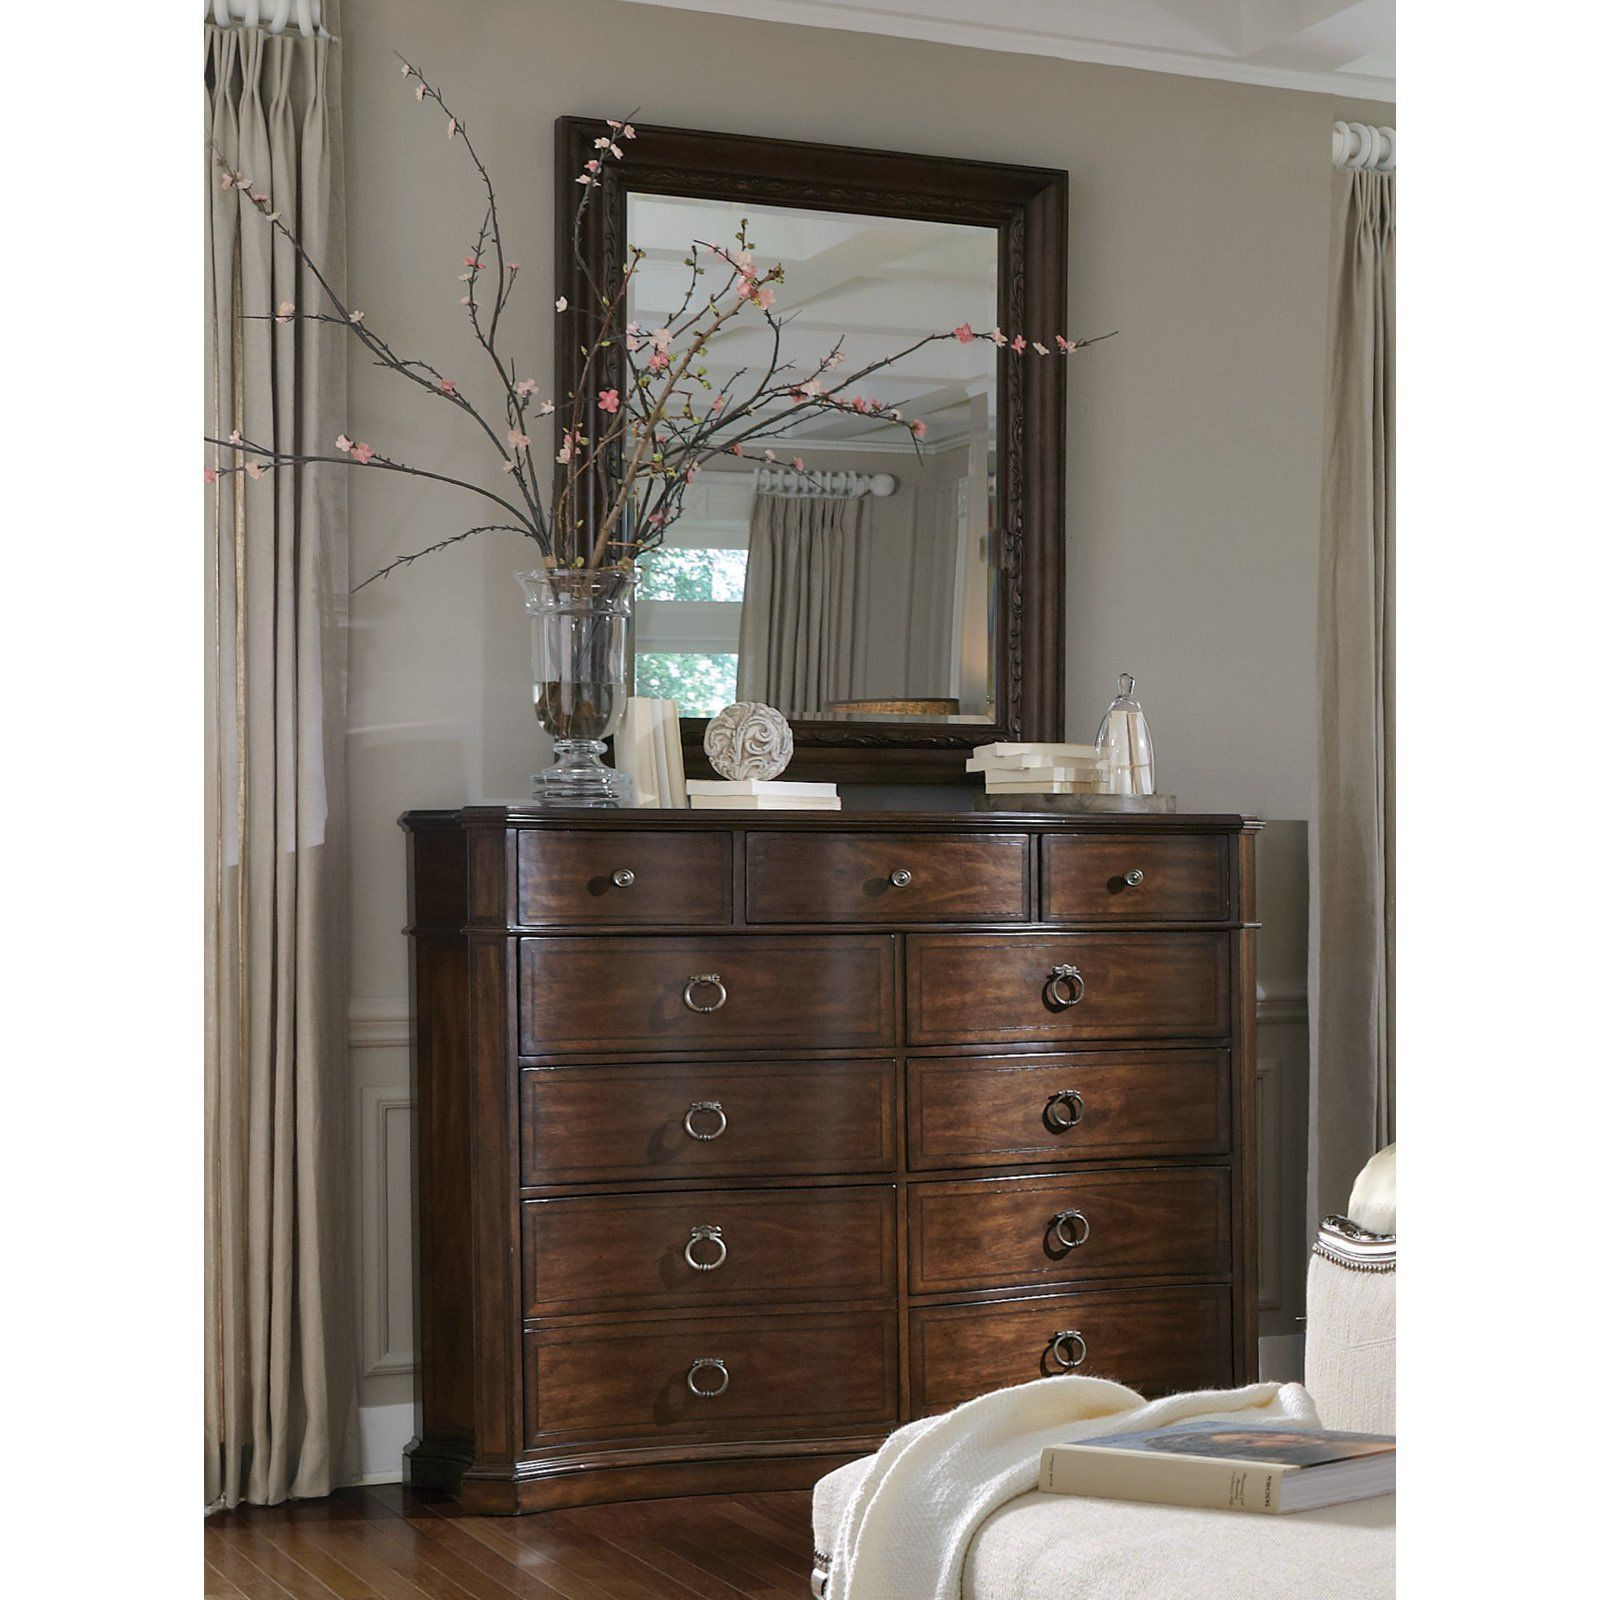 Art Furniture Chateaux 10 Drawer Dresser  Artf659